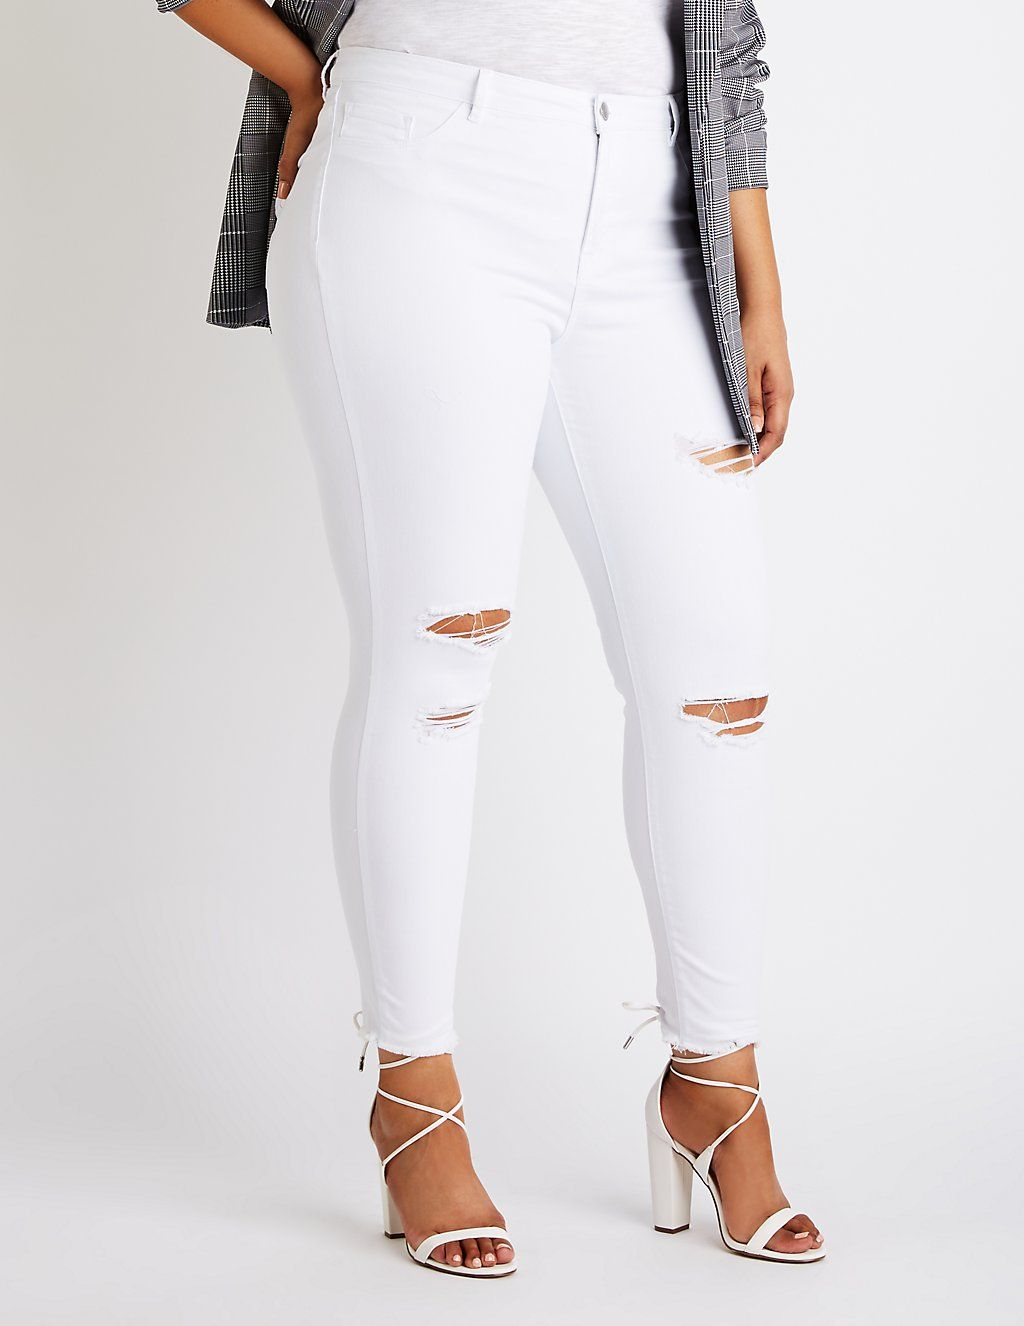 f009864a Plus Size Refuge Destroyed Skintight Legging Jeans | Plus Bottoms ...